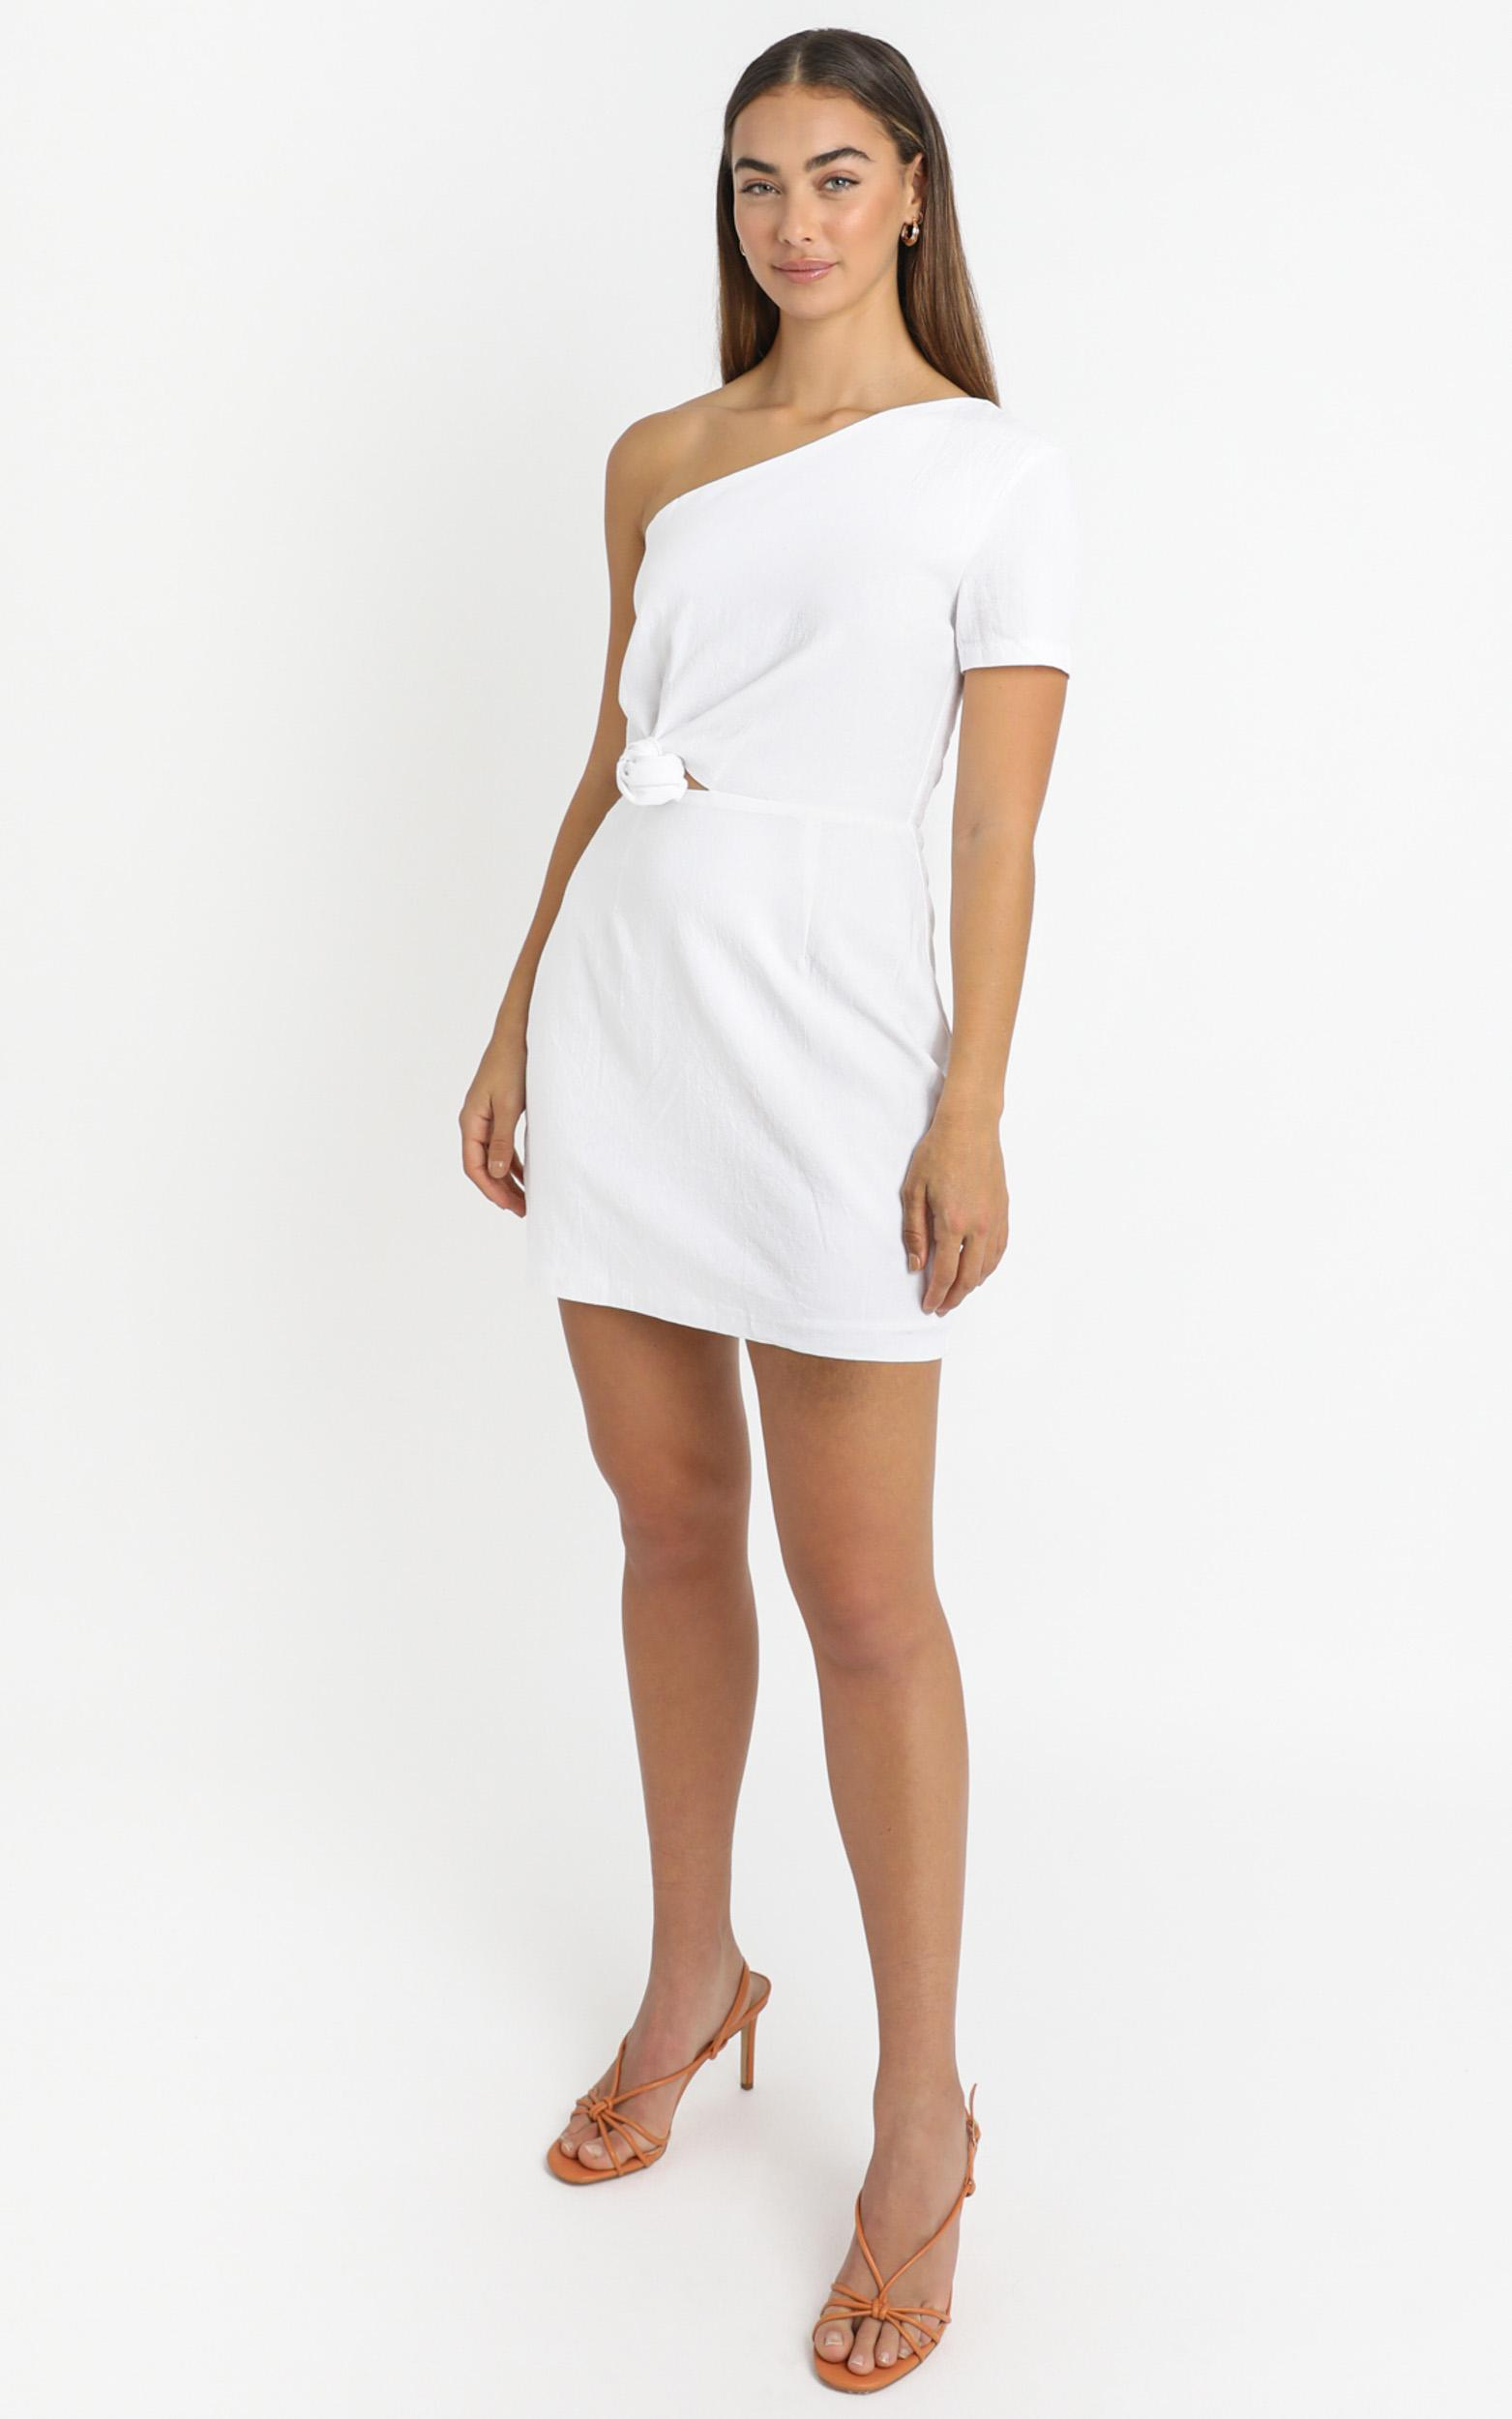 Ruby Dawn Dress in White - 6 (XS), White, hi-res image number null